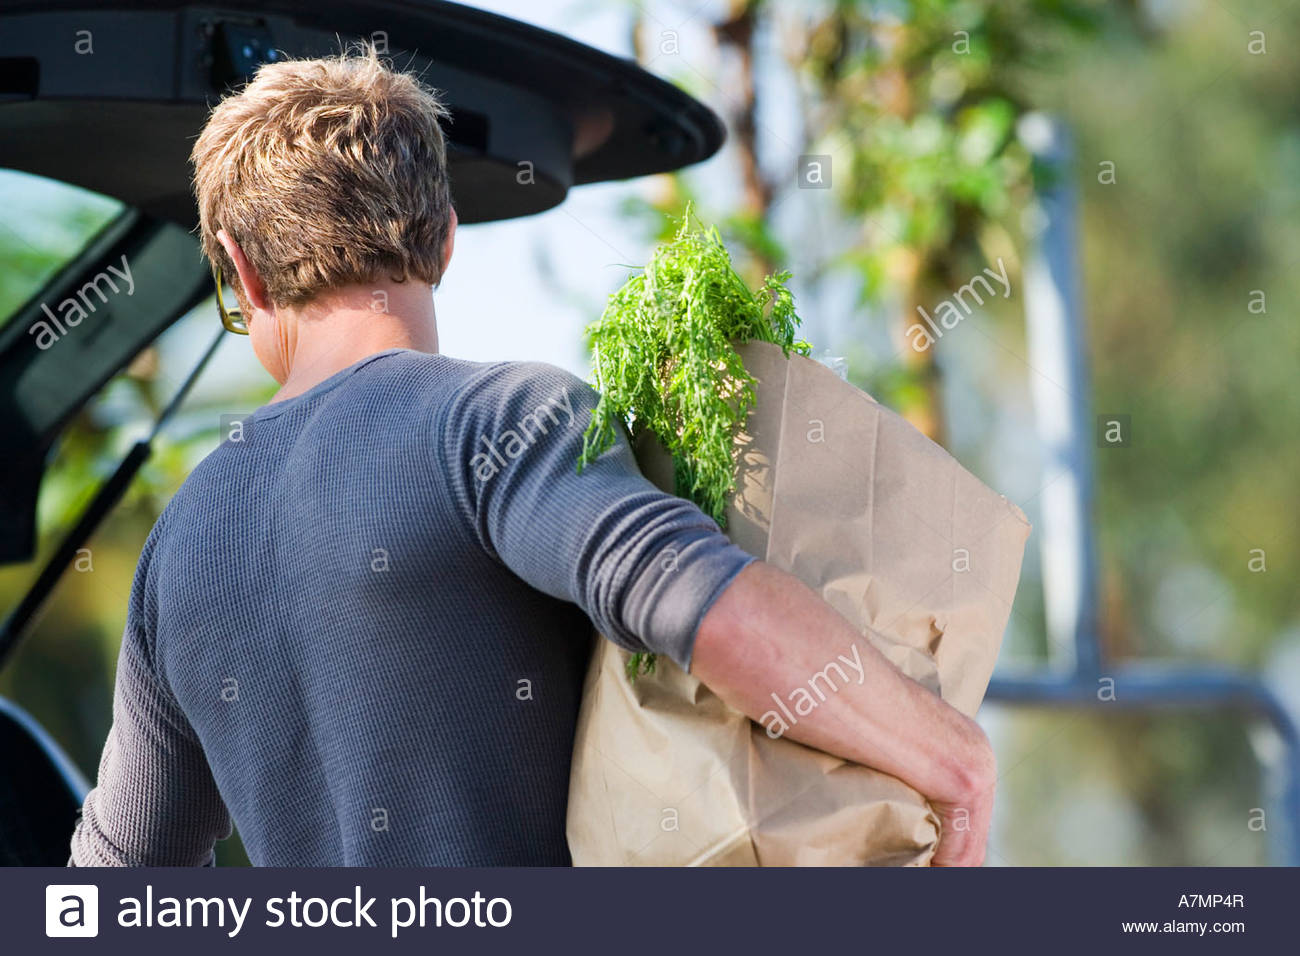 Man loading groceries into car boot in supermarket car park rear view - Stock Image